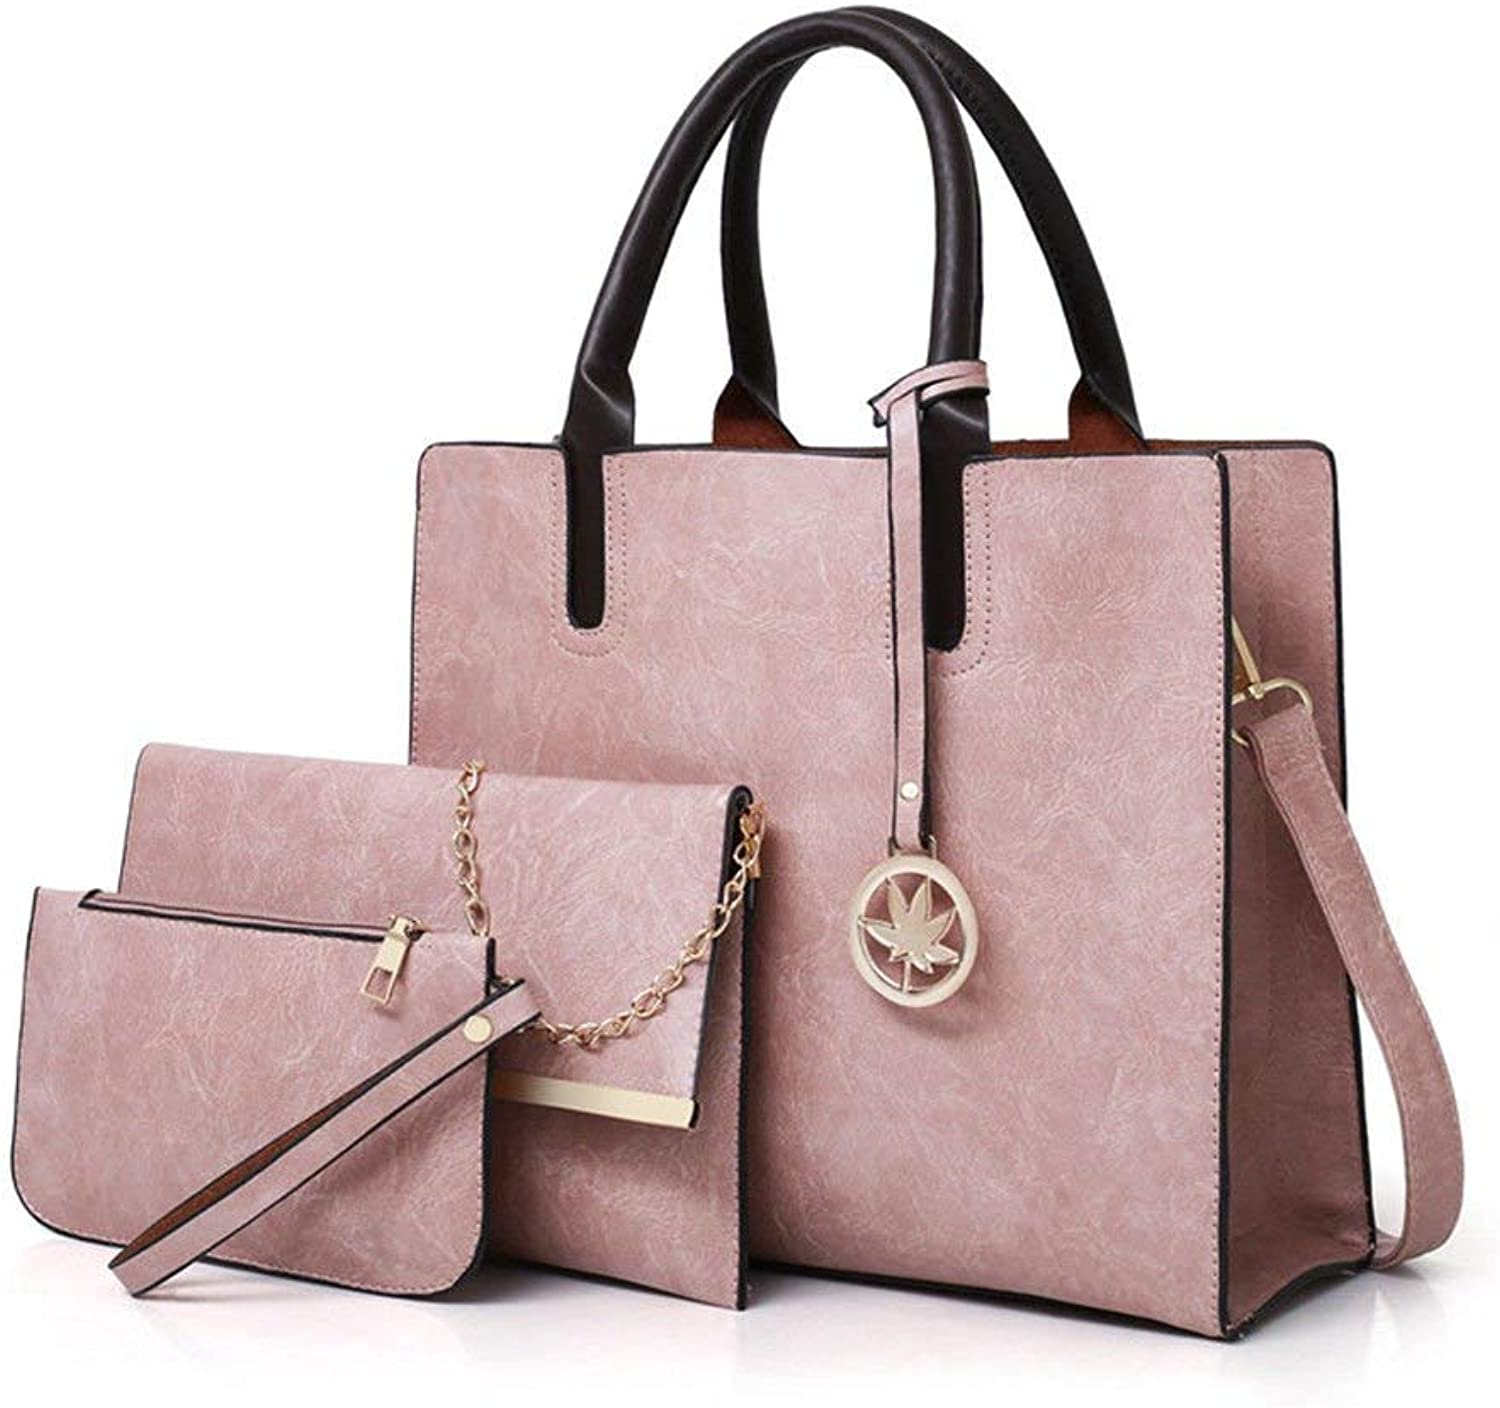 Ladies Handbag Antique Bag Handbag Professional Business Bag (color   Pink, Size   Three Piece Set)